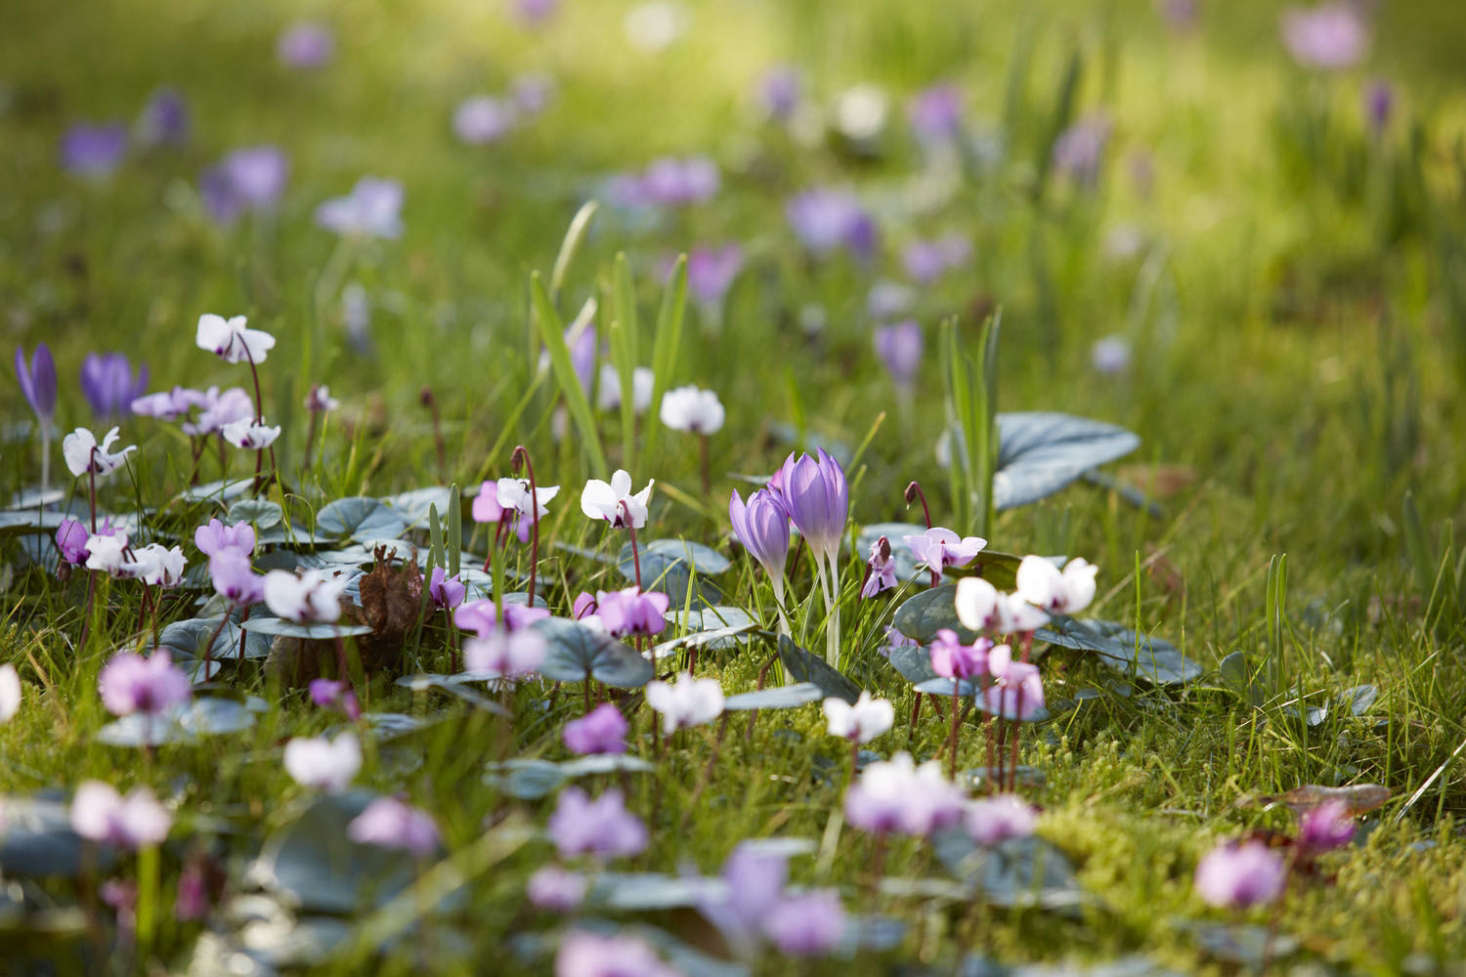 Crocus and cyclamen mingle on turf grass. Photograph by Britt Willoughby Dyer.